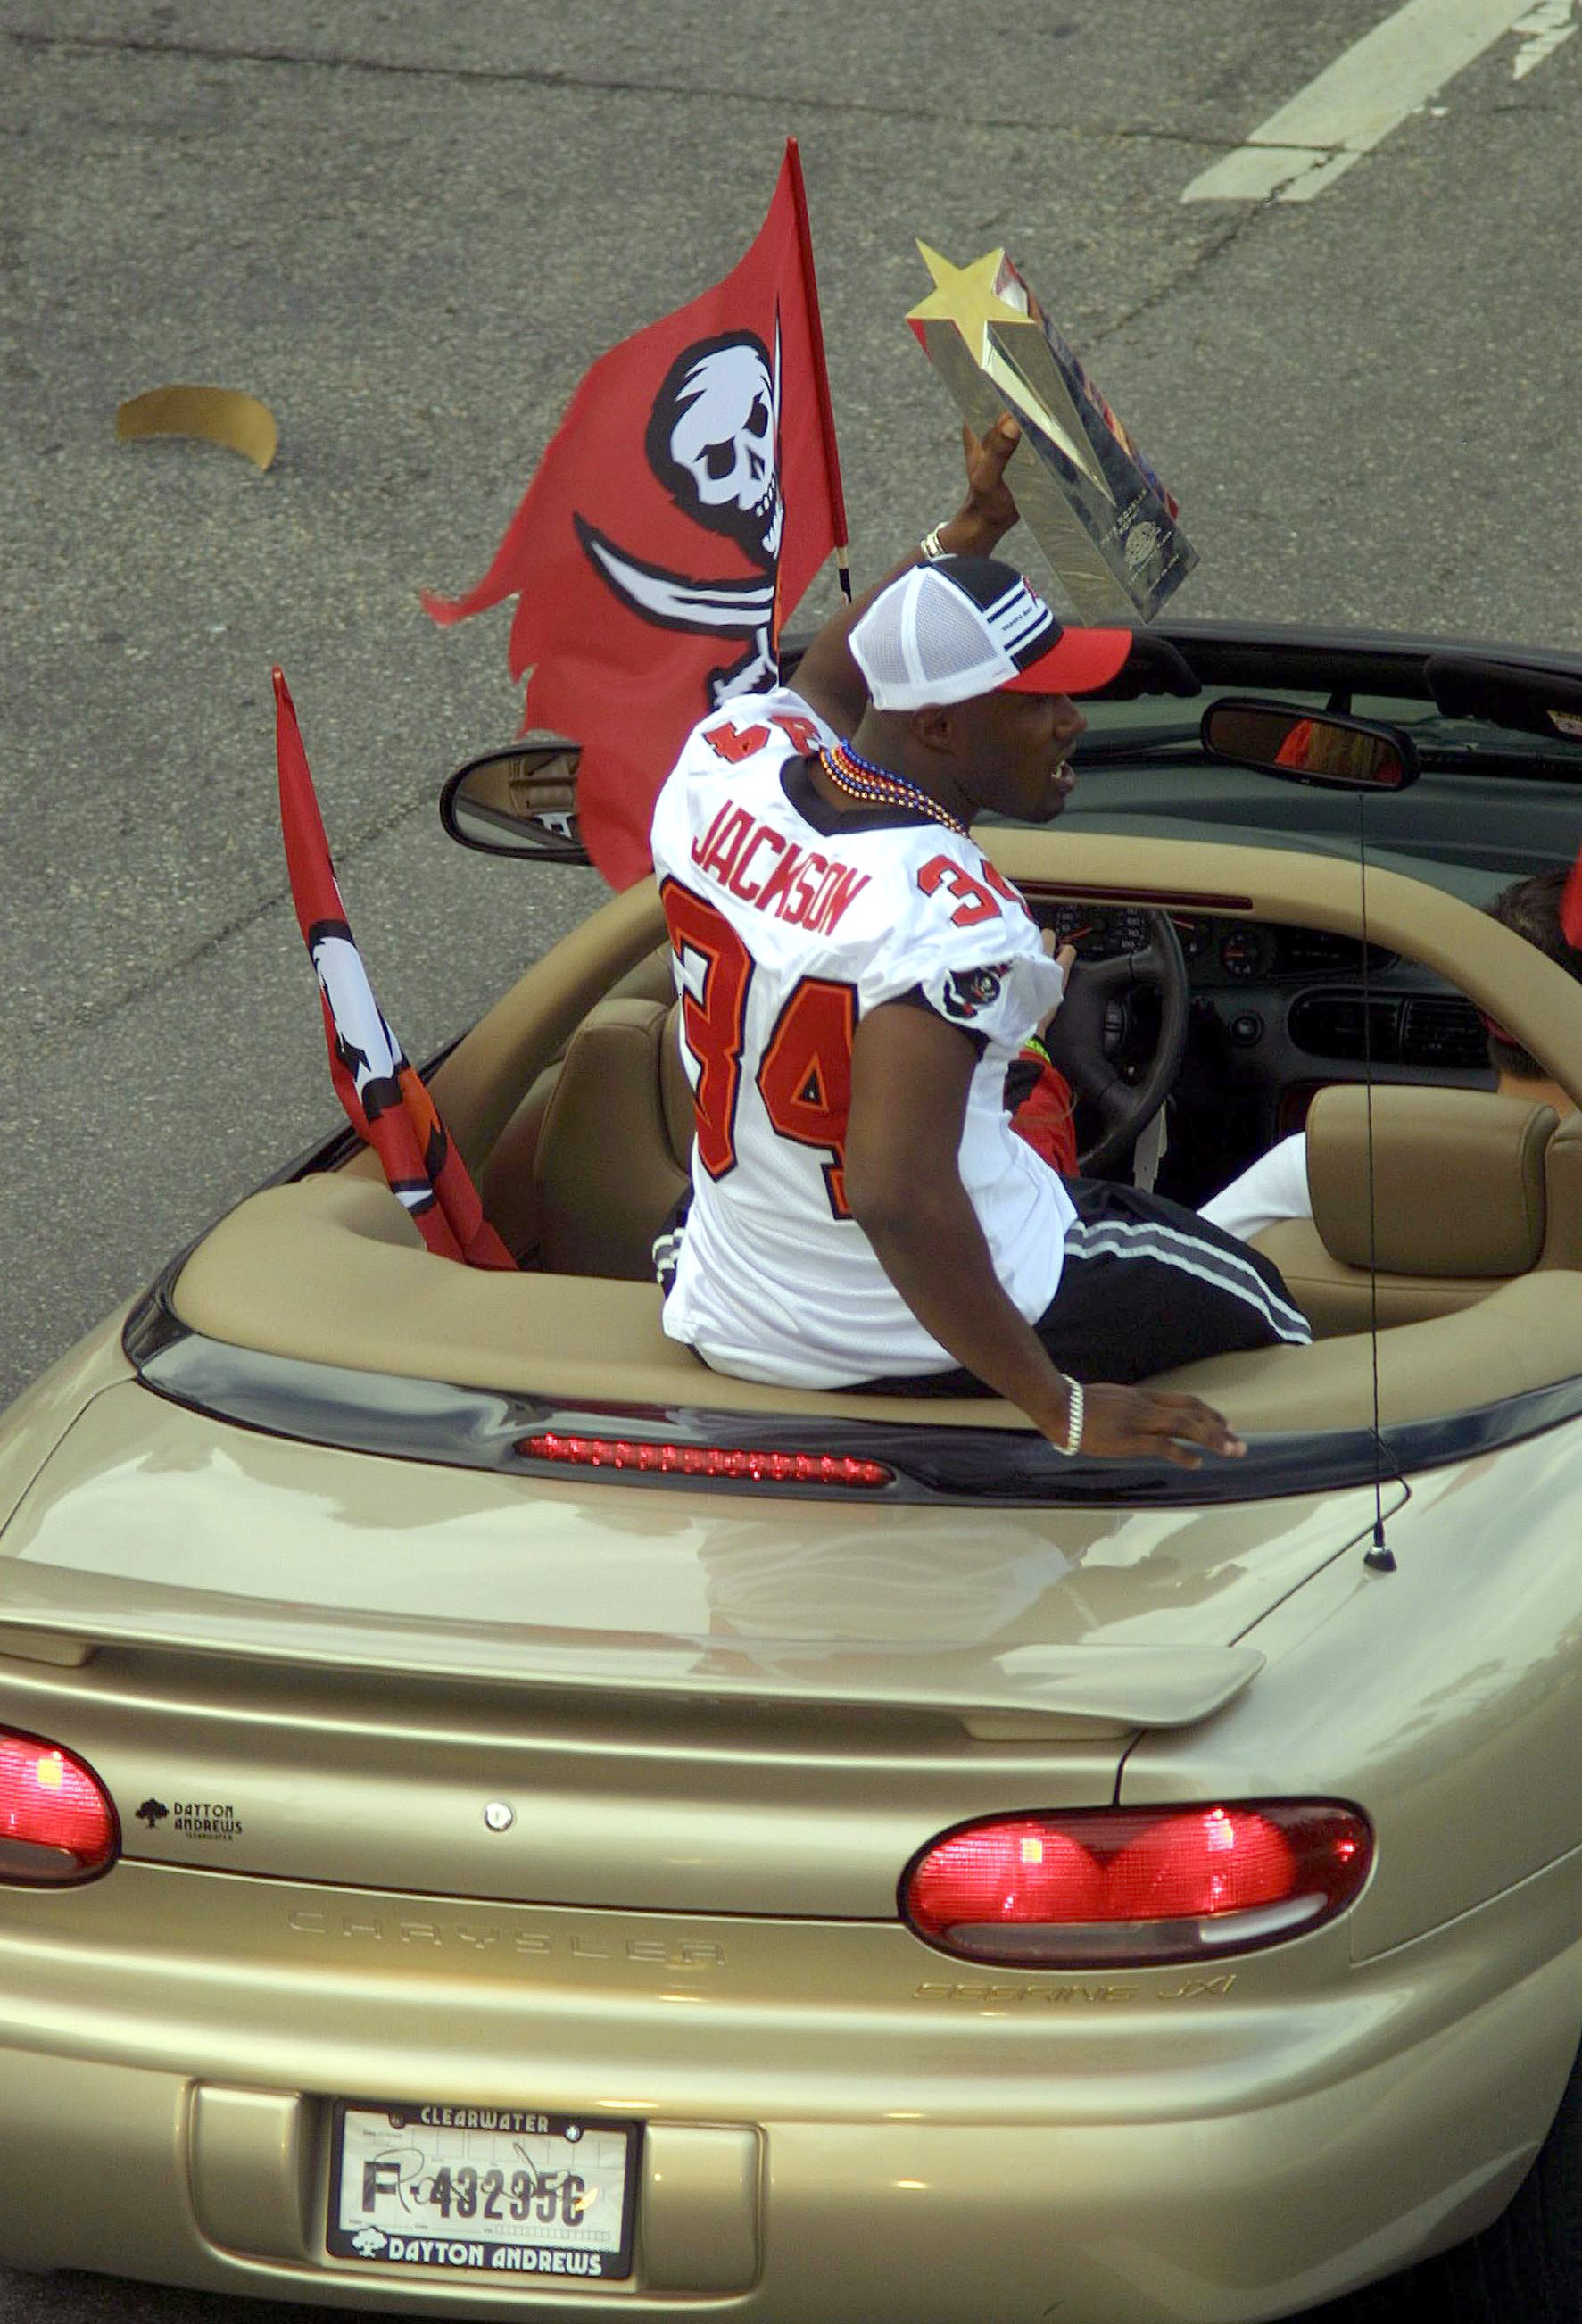 TAMPA, FL - JANUARY 28:  Dexter Jackson of the Tampa Bay Buccaneers shows off his Super Bowl MVP trophy during a victory parade on January 28, 2003 in Tampa, Florida. The Buccaneers defeated the Oakland Raiders 48-21 in Super Bowl XXXVII. (Photo by Chris